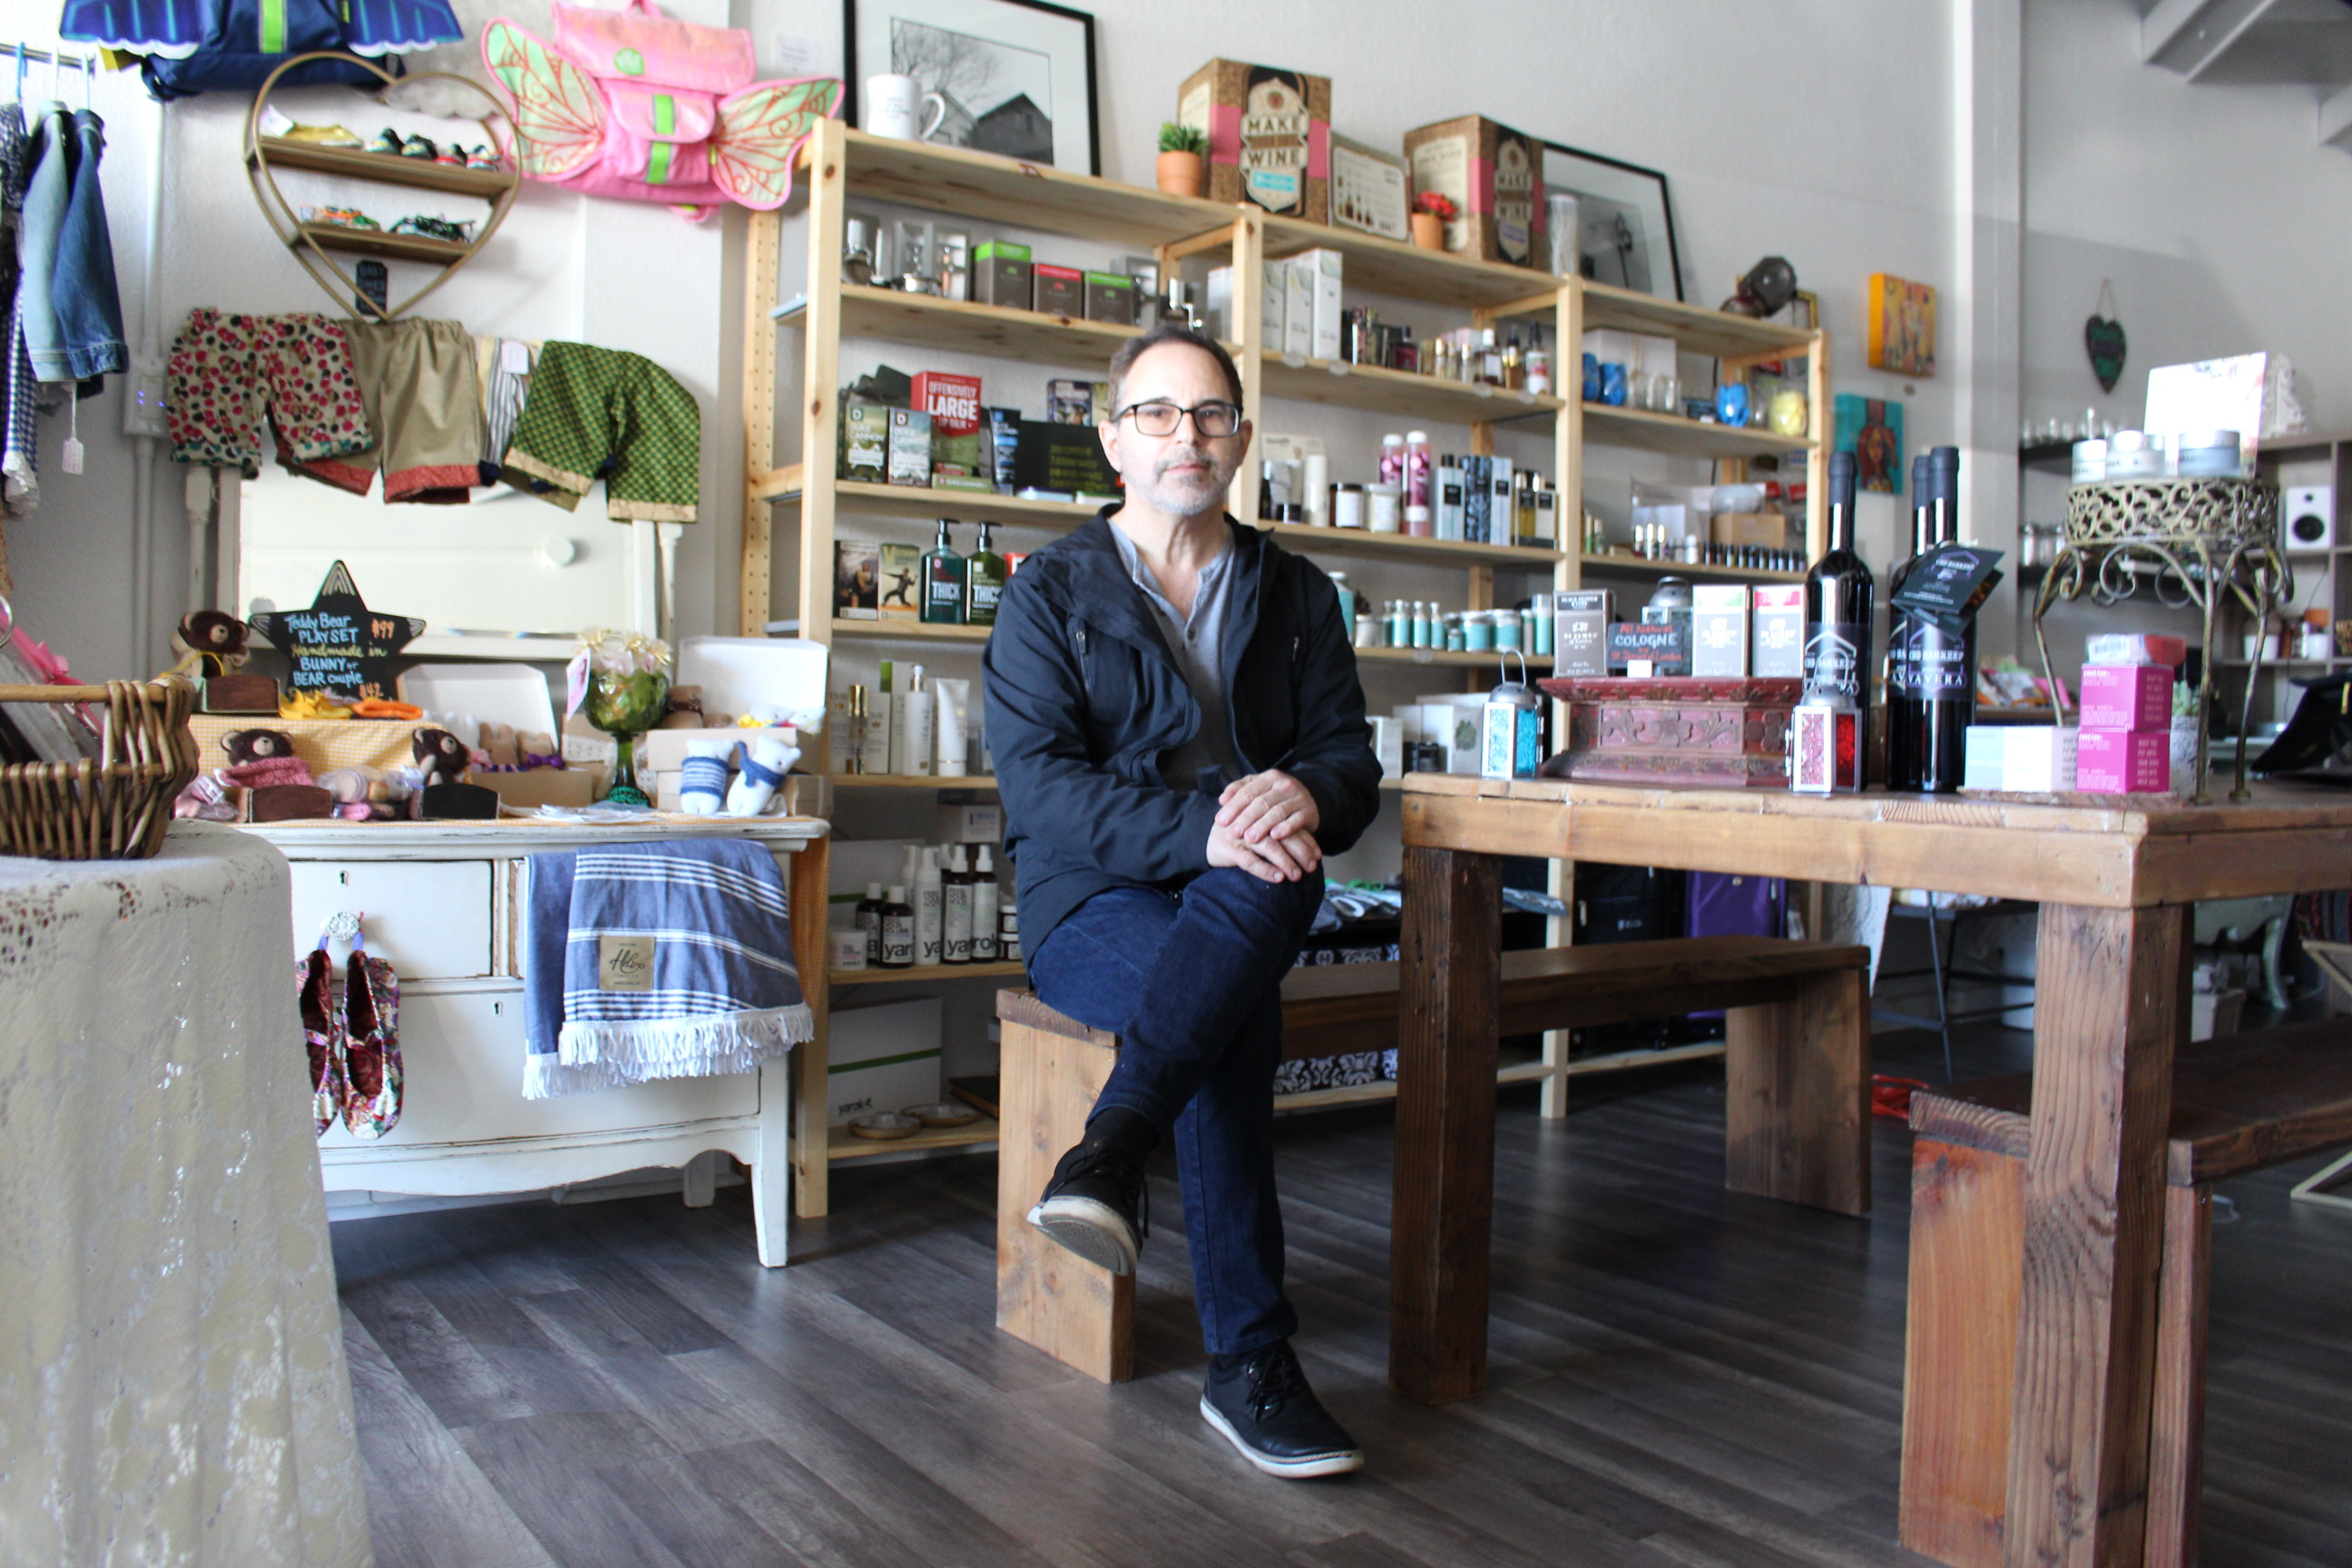 Playa del Rey business owner Jim Iacono is still waiting for his small business loan. | Karen Foshay